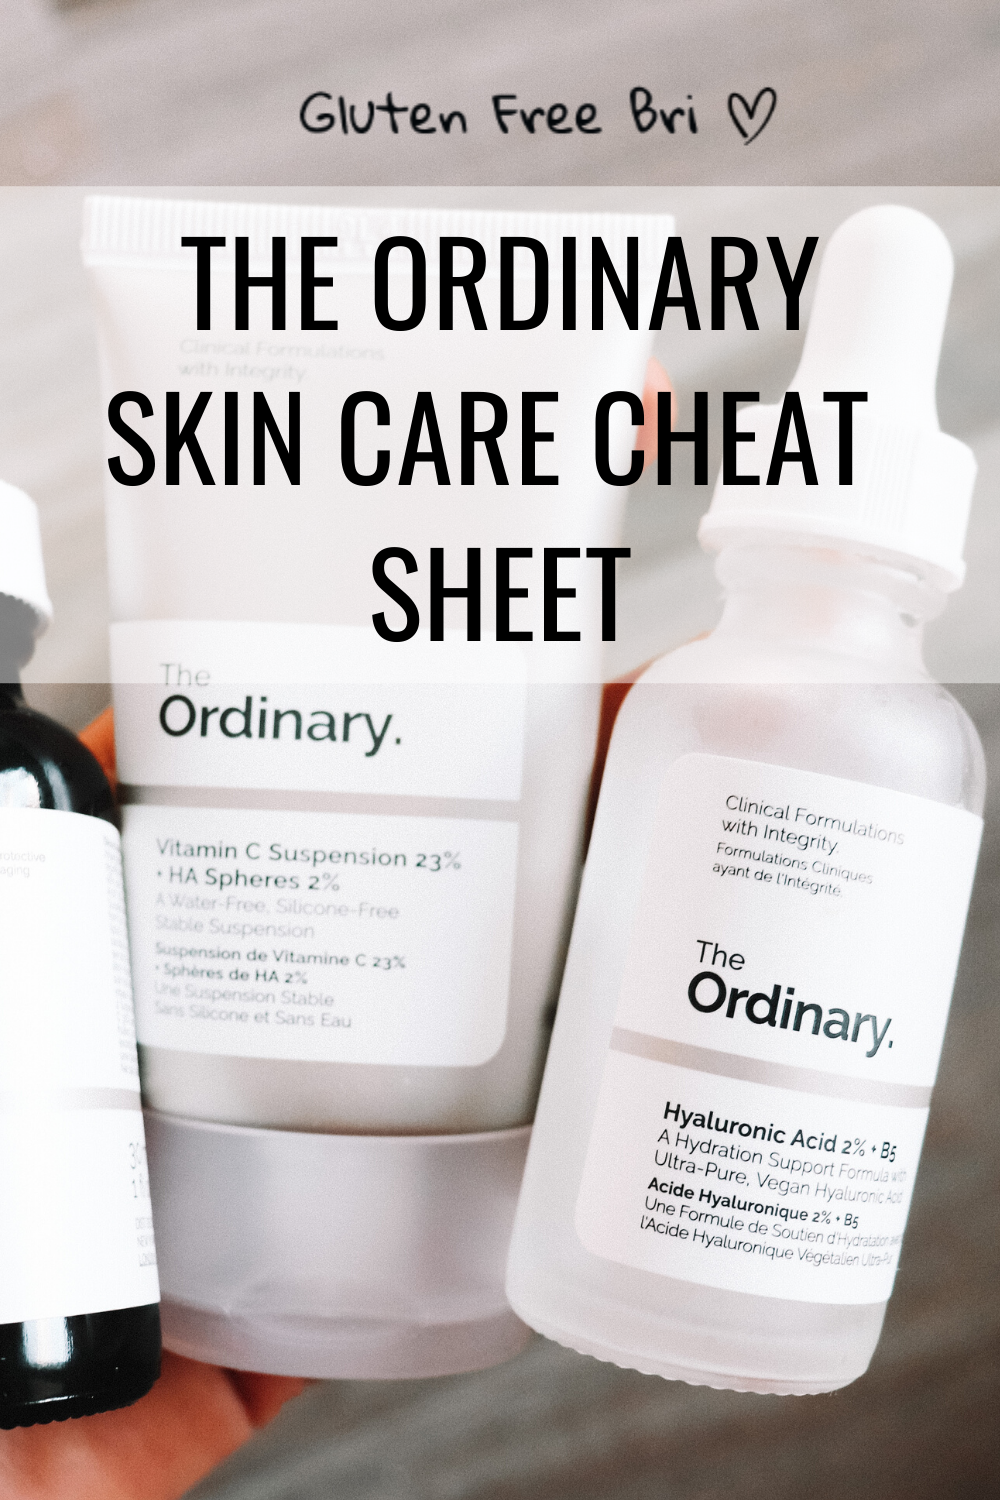 The Ordinary Skin Care Cheat Sheet The Ordinary Skincare Guide The Ordinary Skincare Routine The Ordinary Products